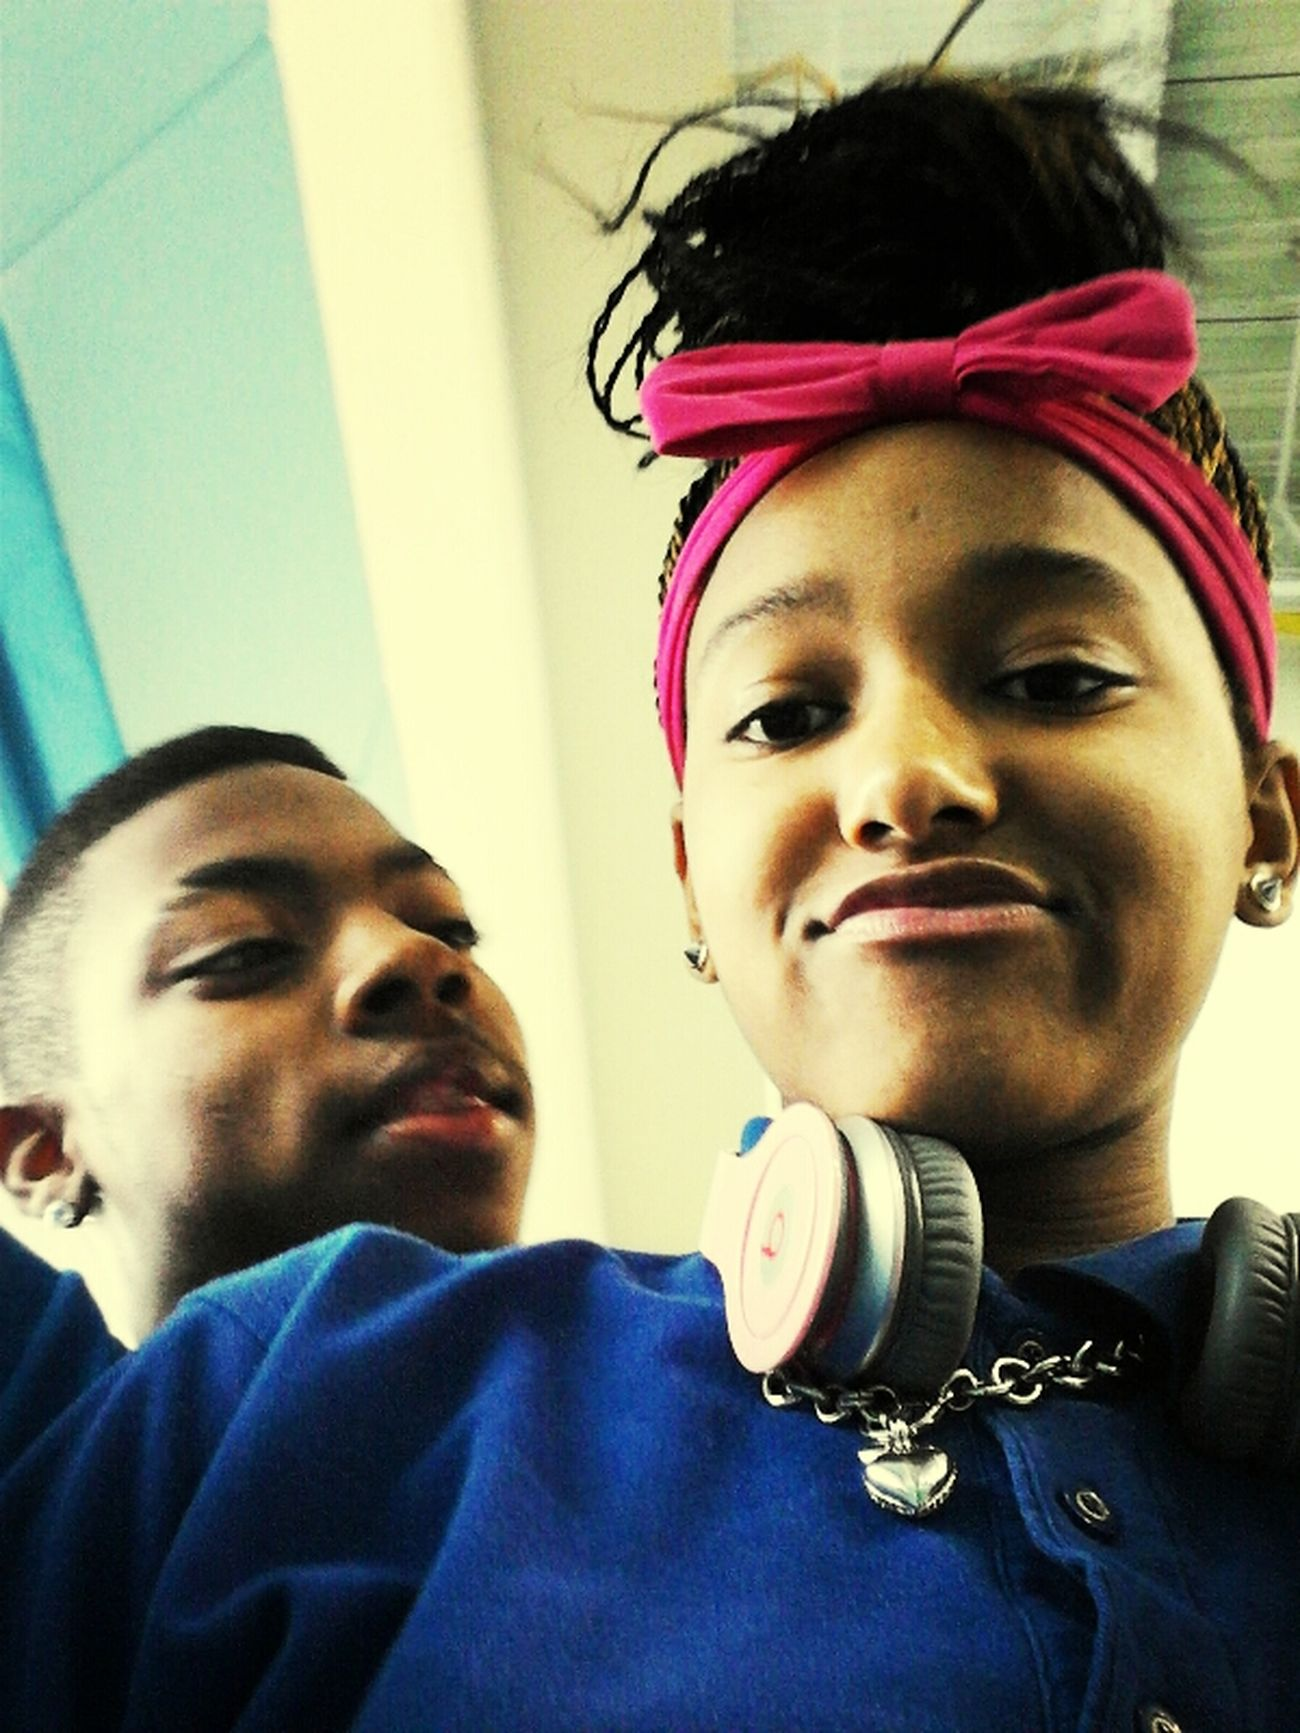 Mee Andd Himm <3